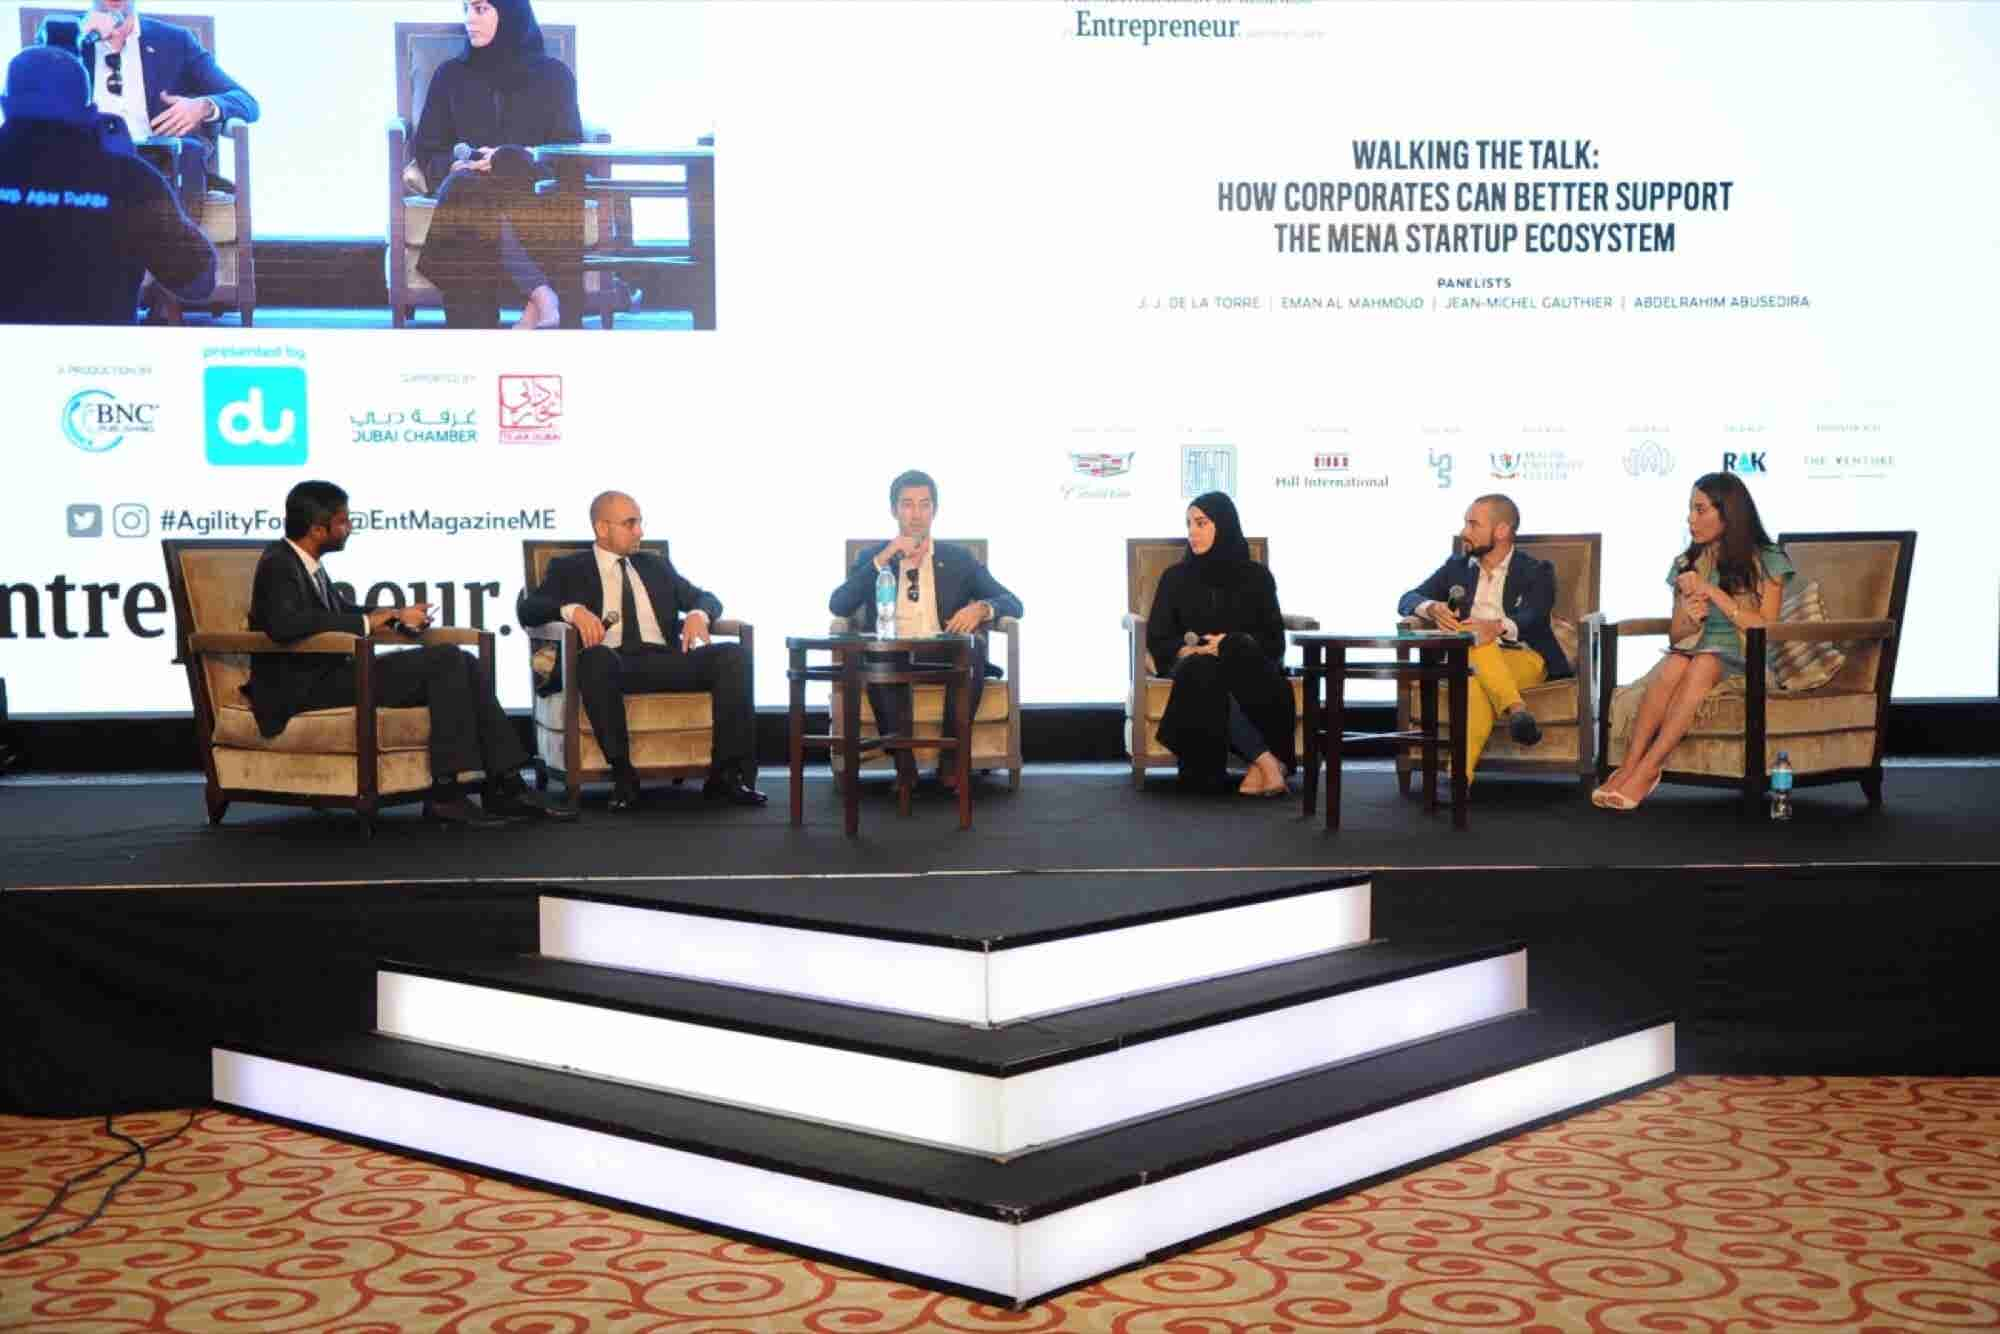 Eight Points Of Reference To Help Grow The MENA Startup Ecosystem